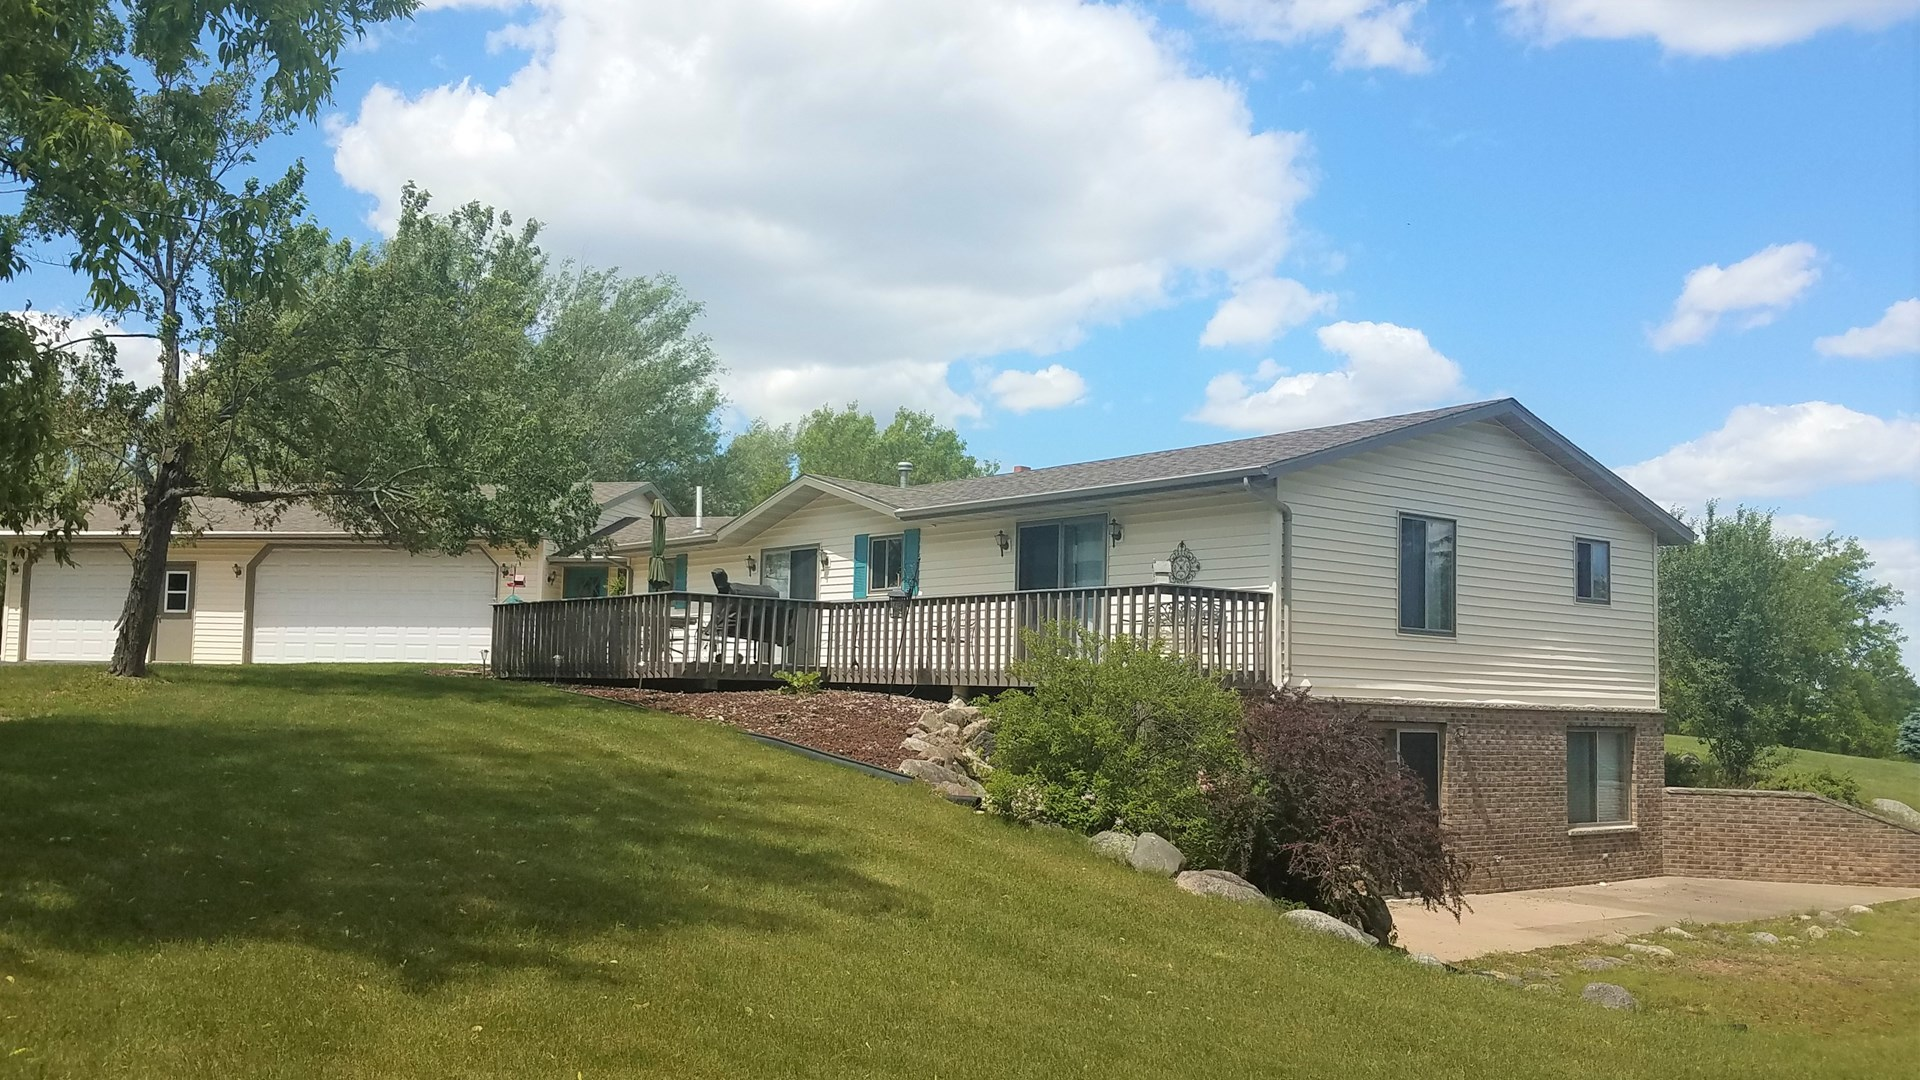 Country Home for Sale in Waupaca, WI